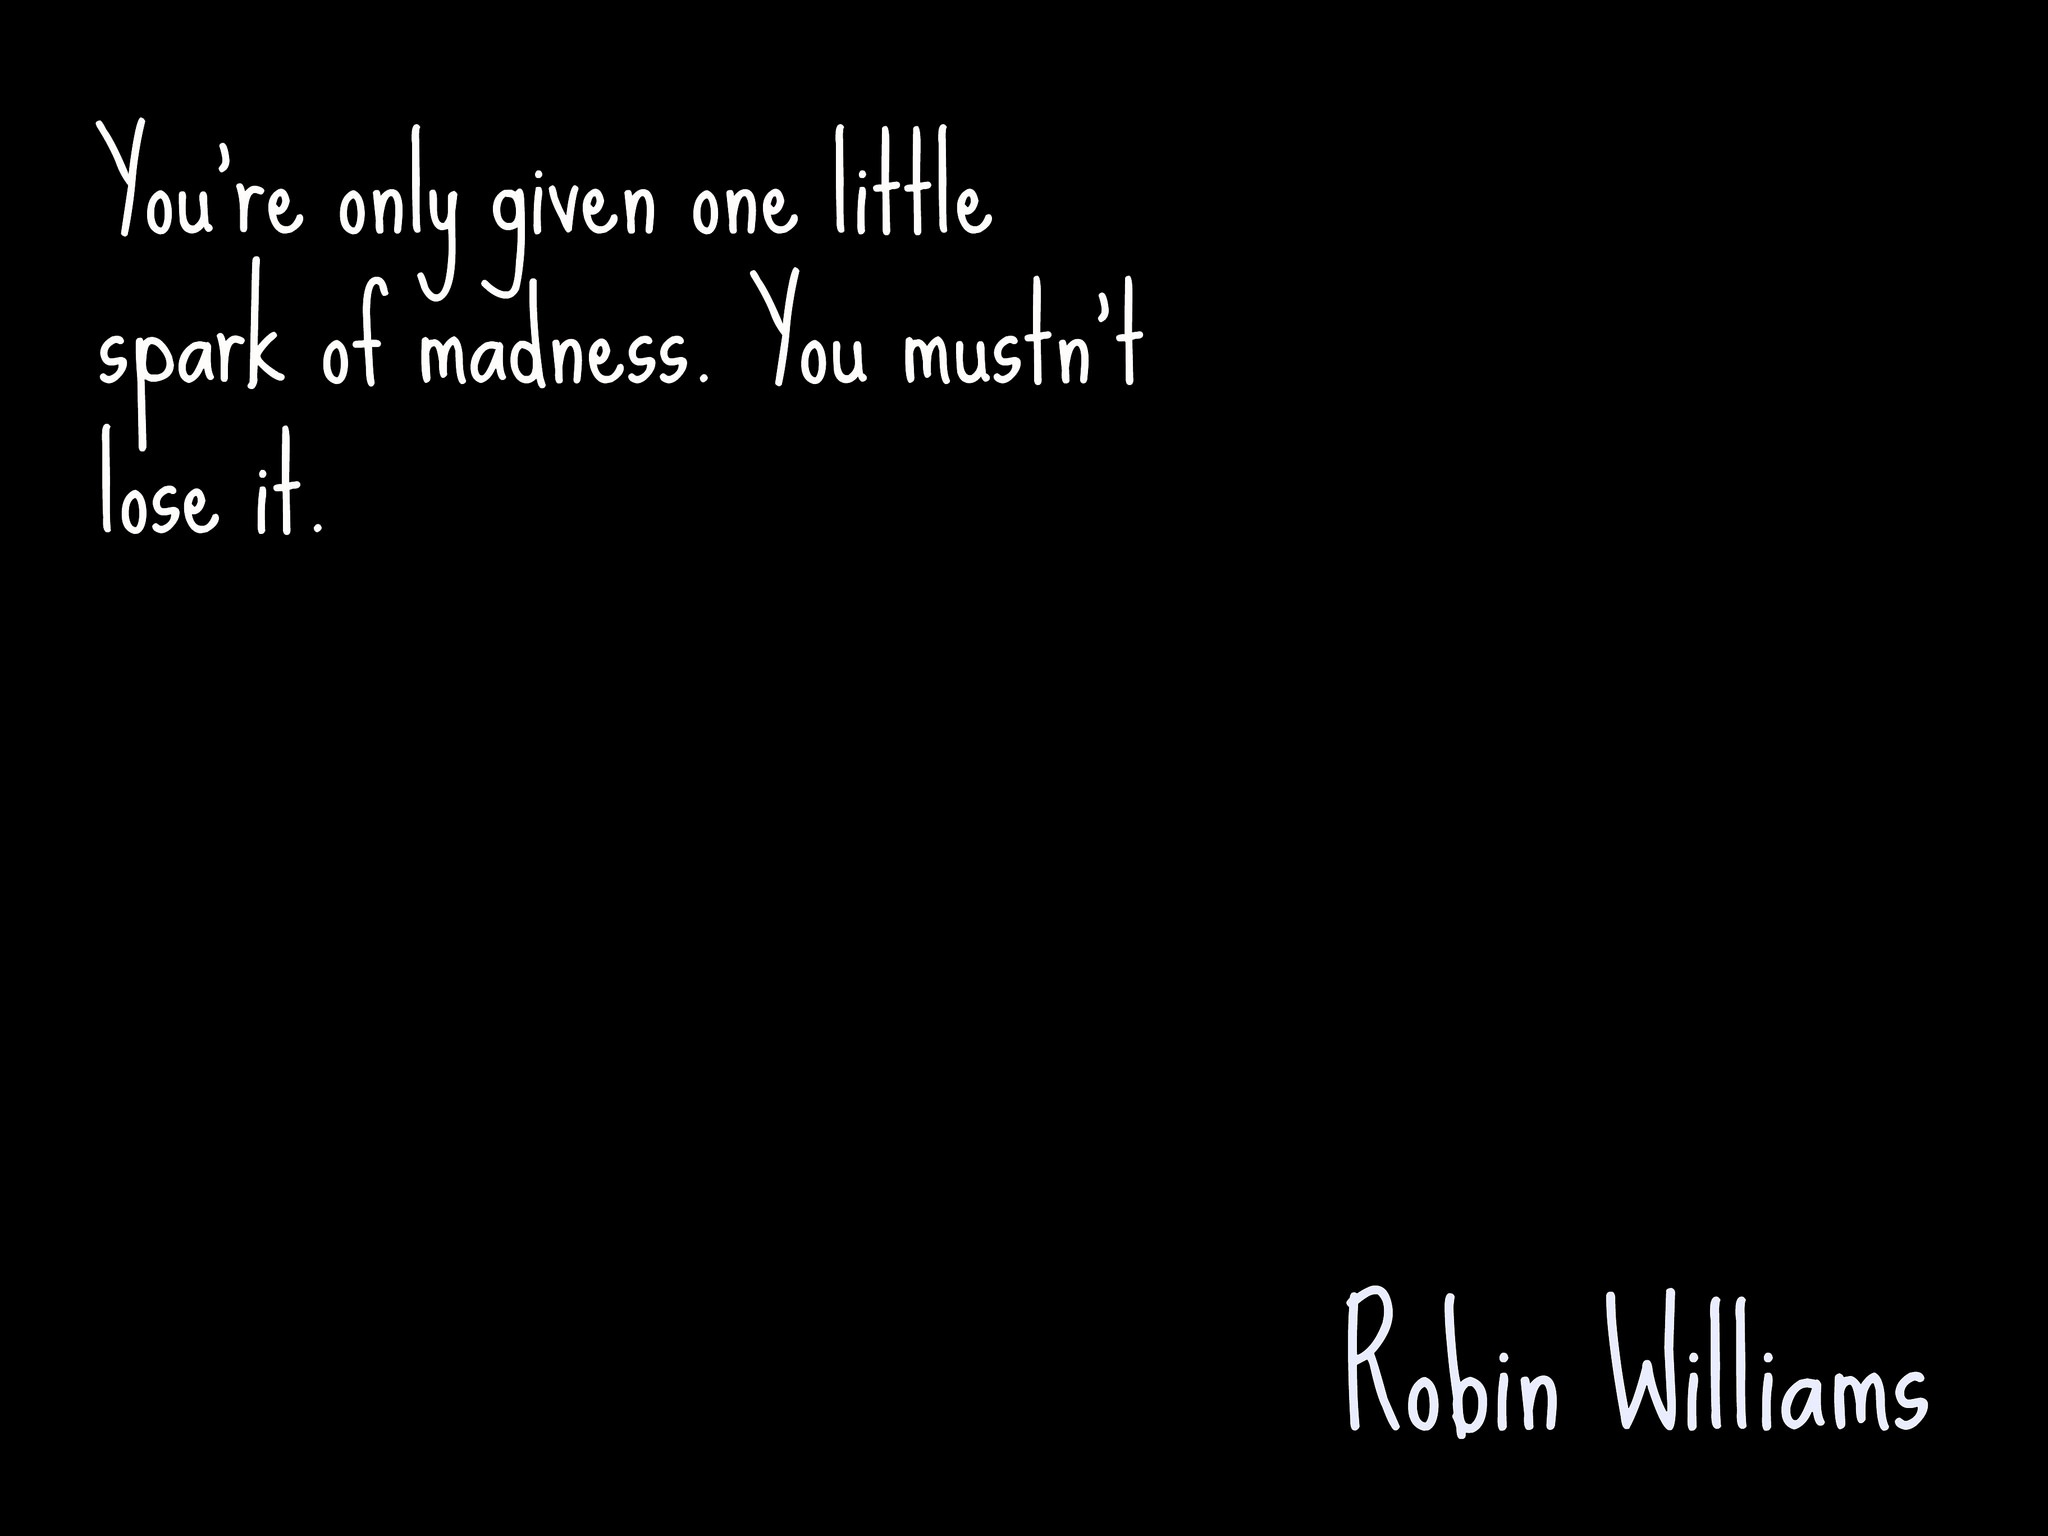 On Robin Williams' Passing